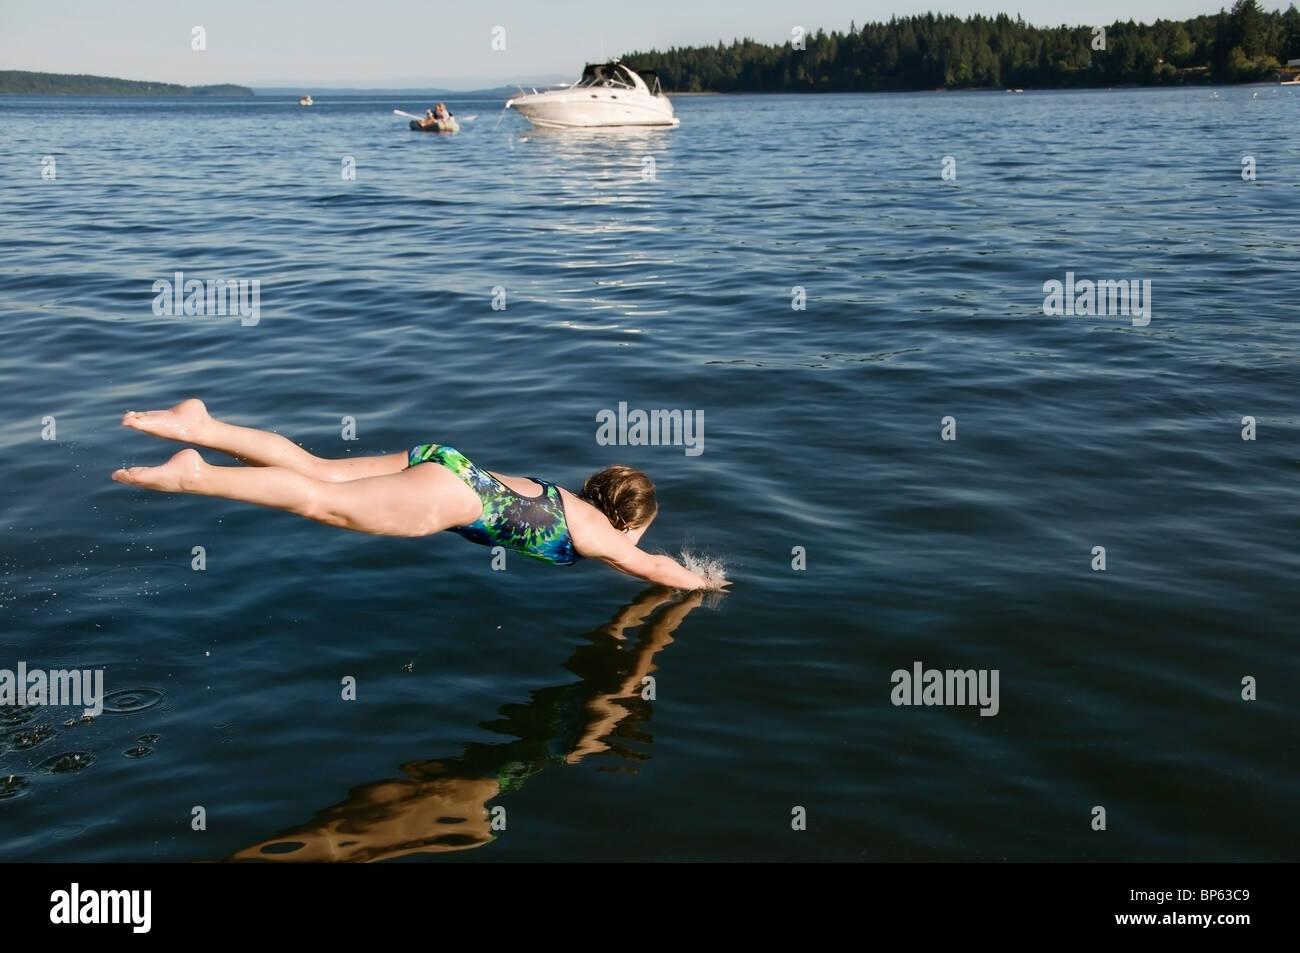 A Girl Dives Head First Into The Cold Water Of South Puget